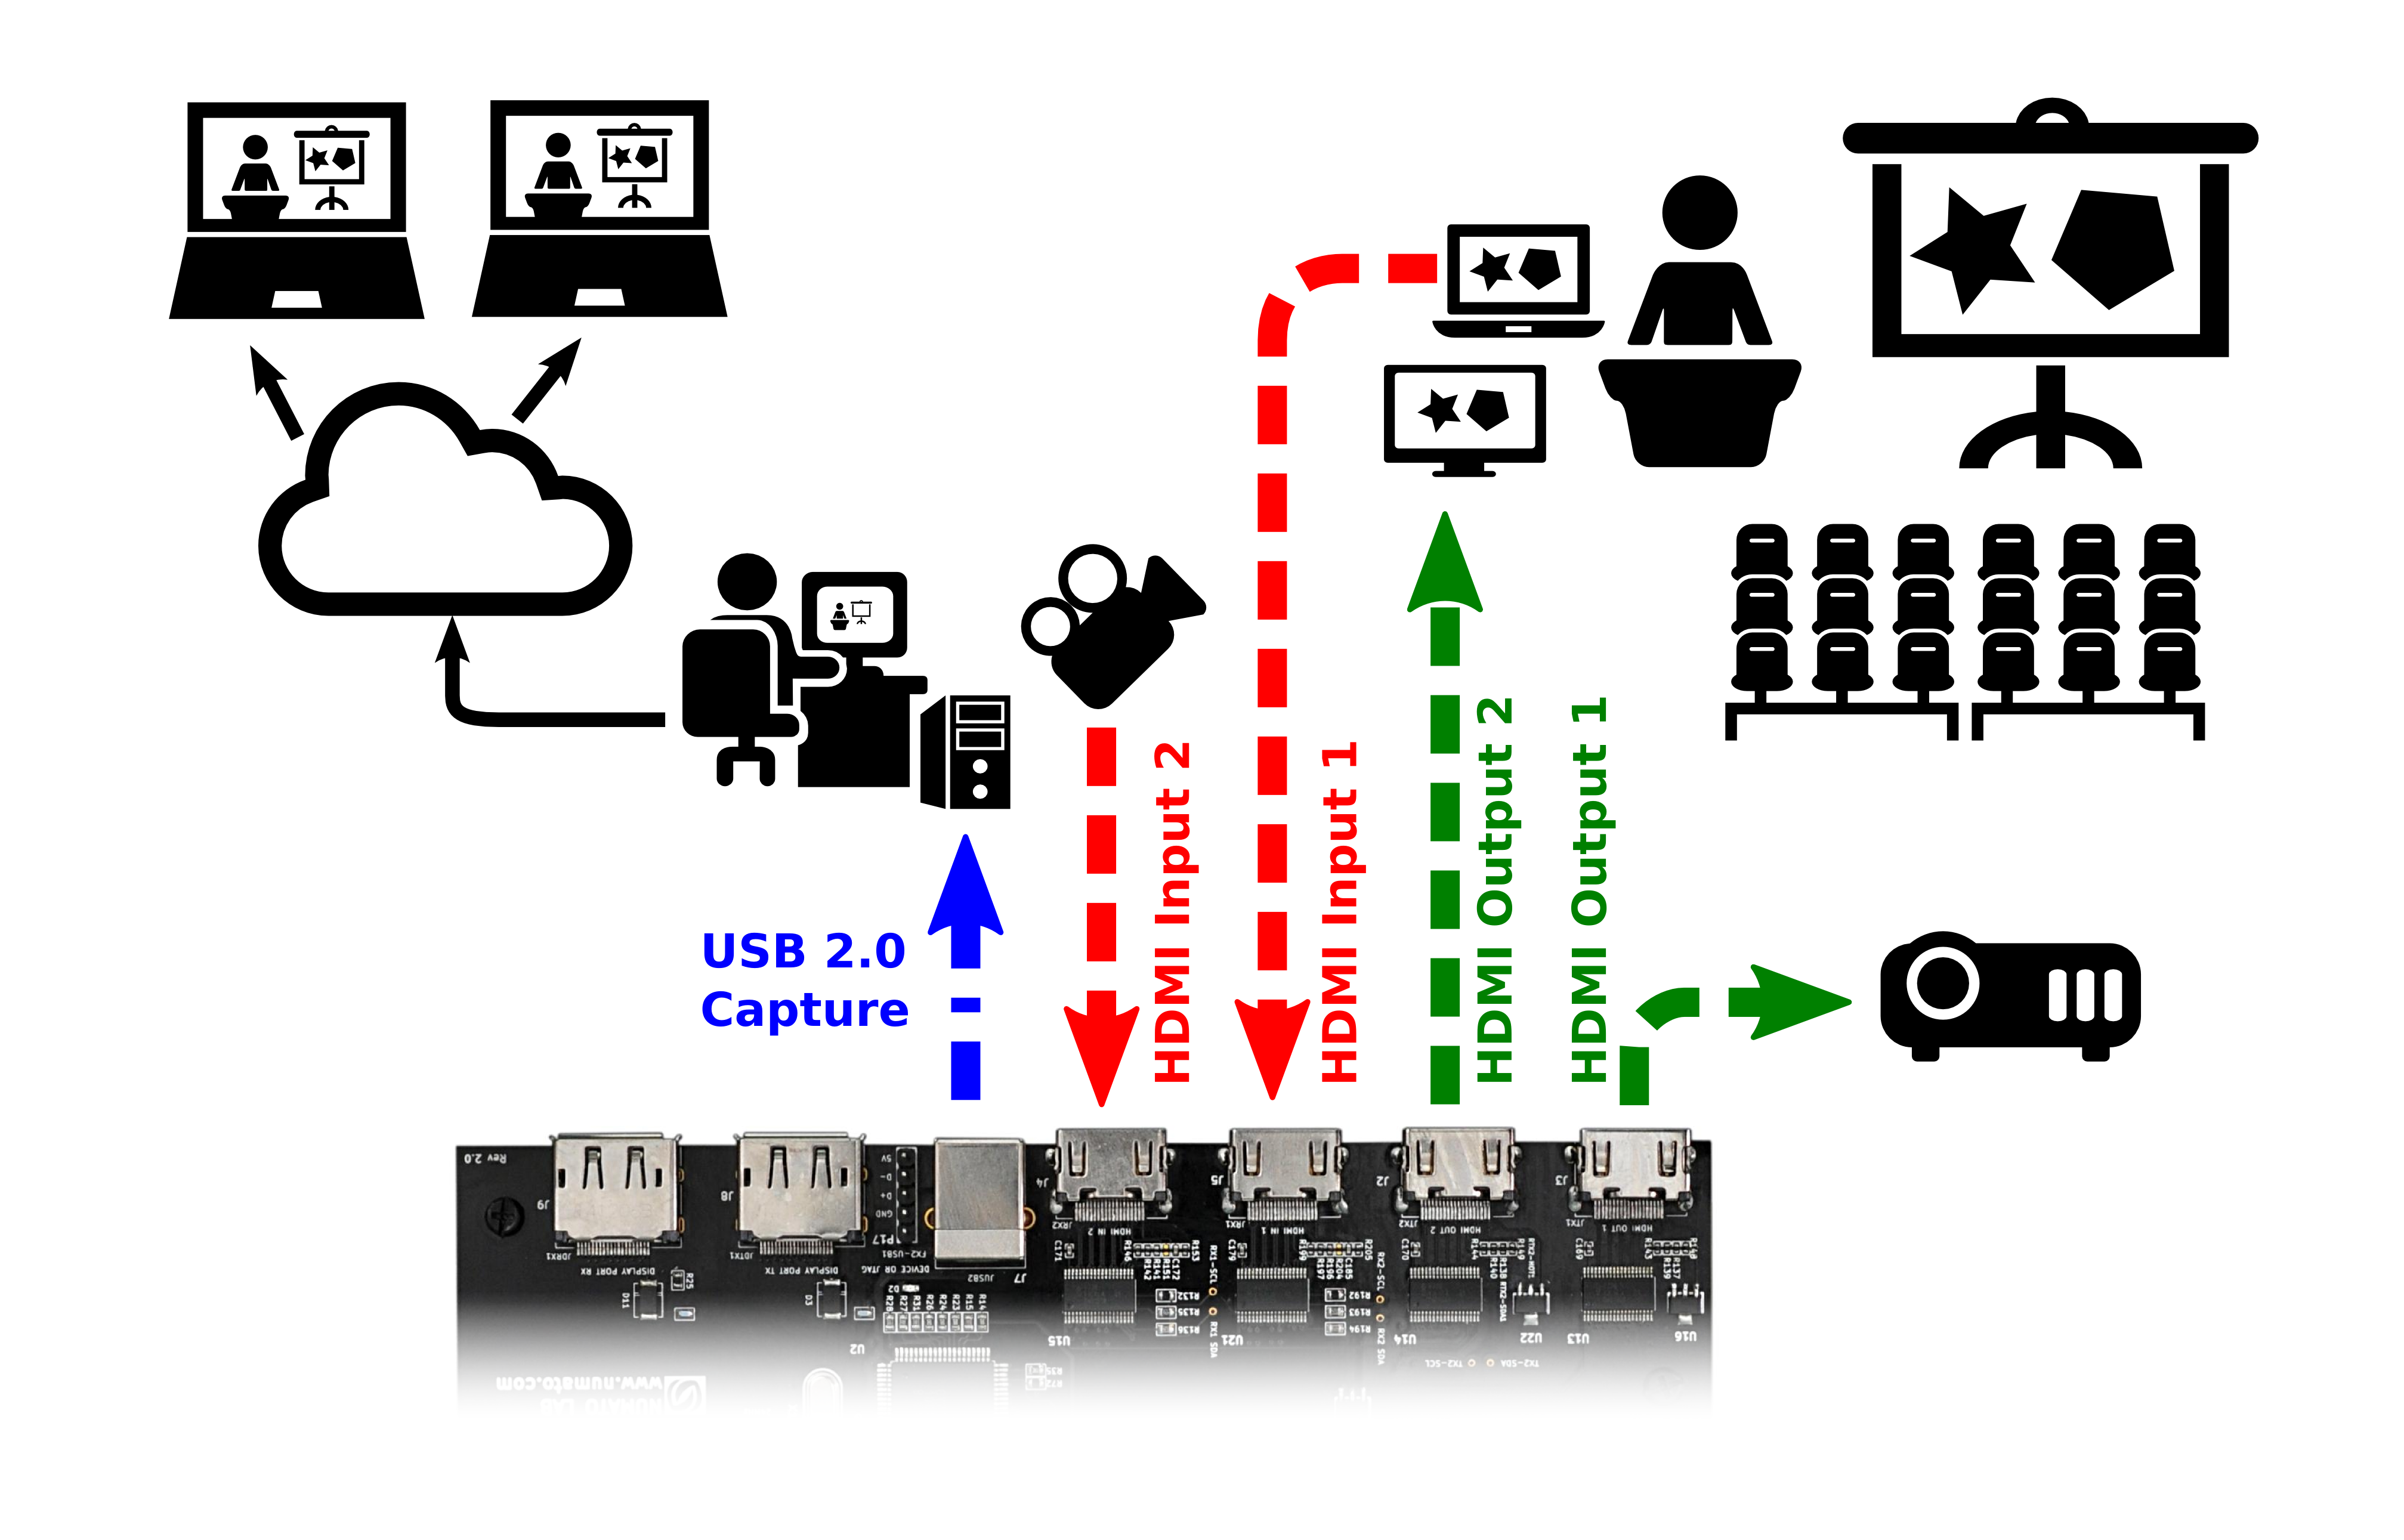 HDMI2USB Diagram